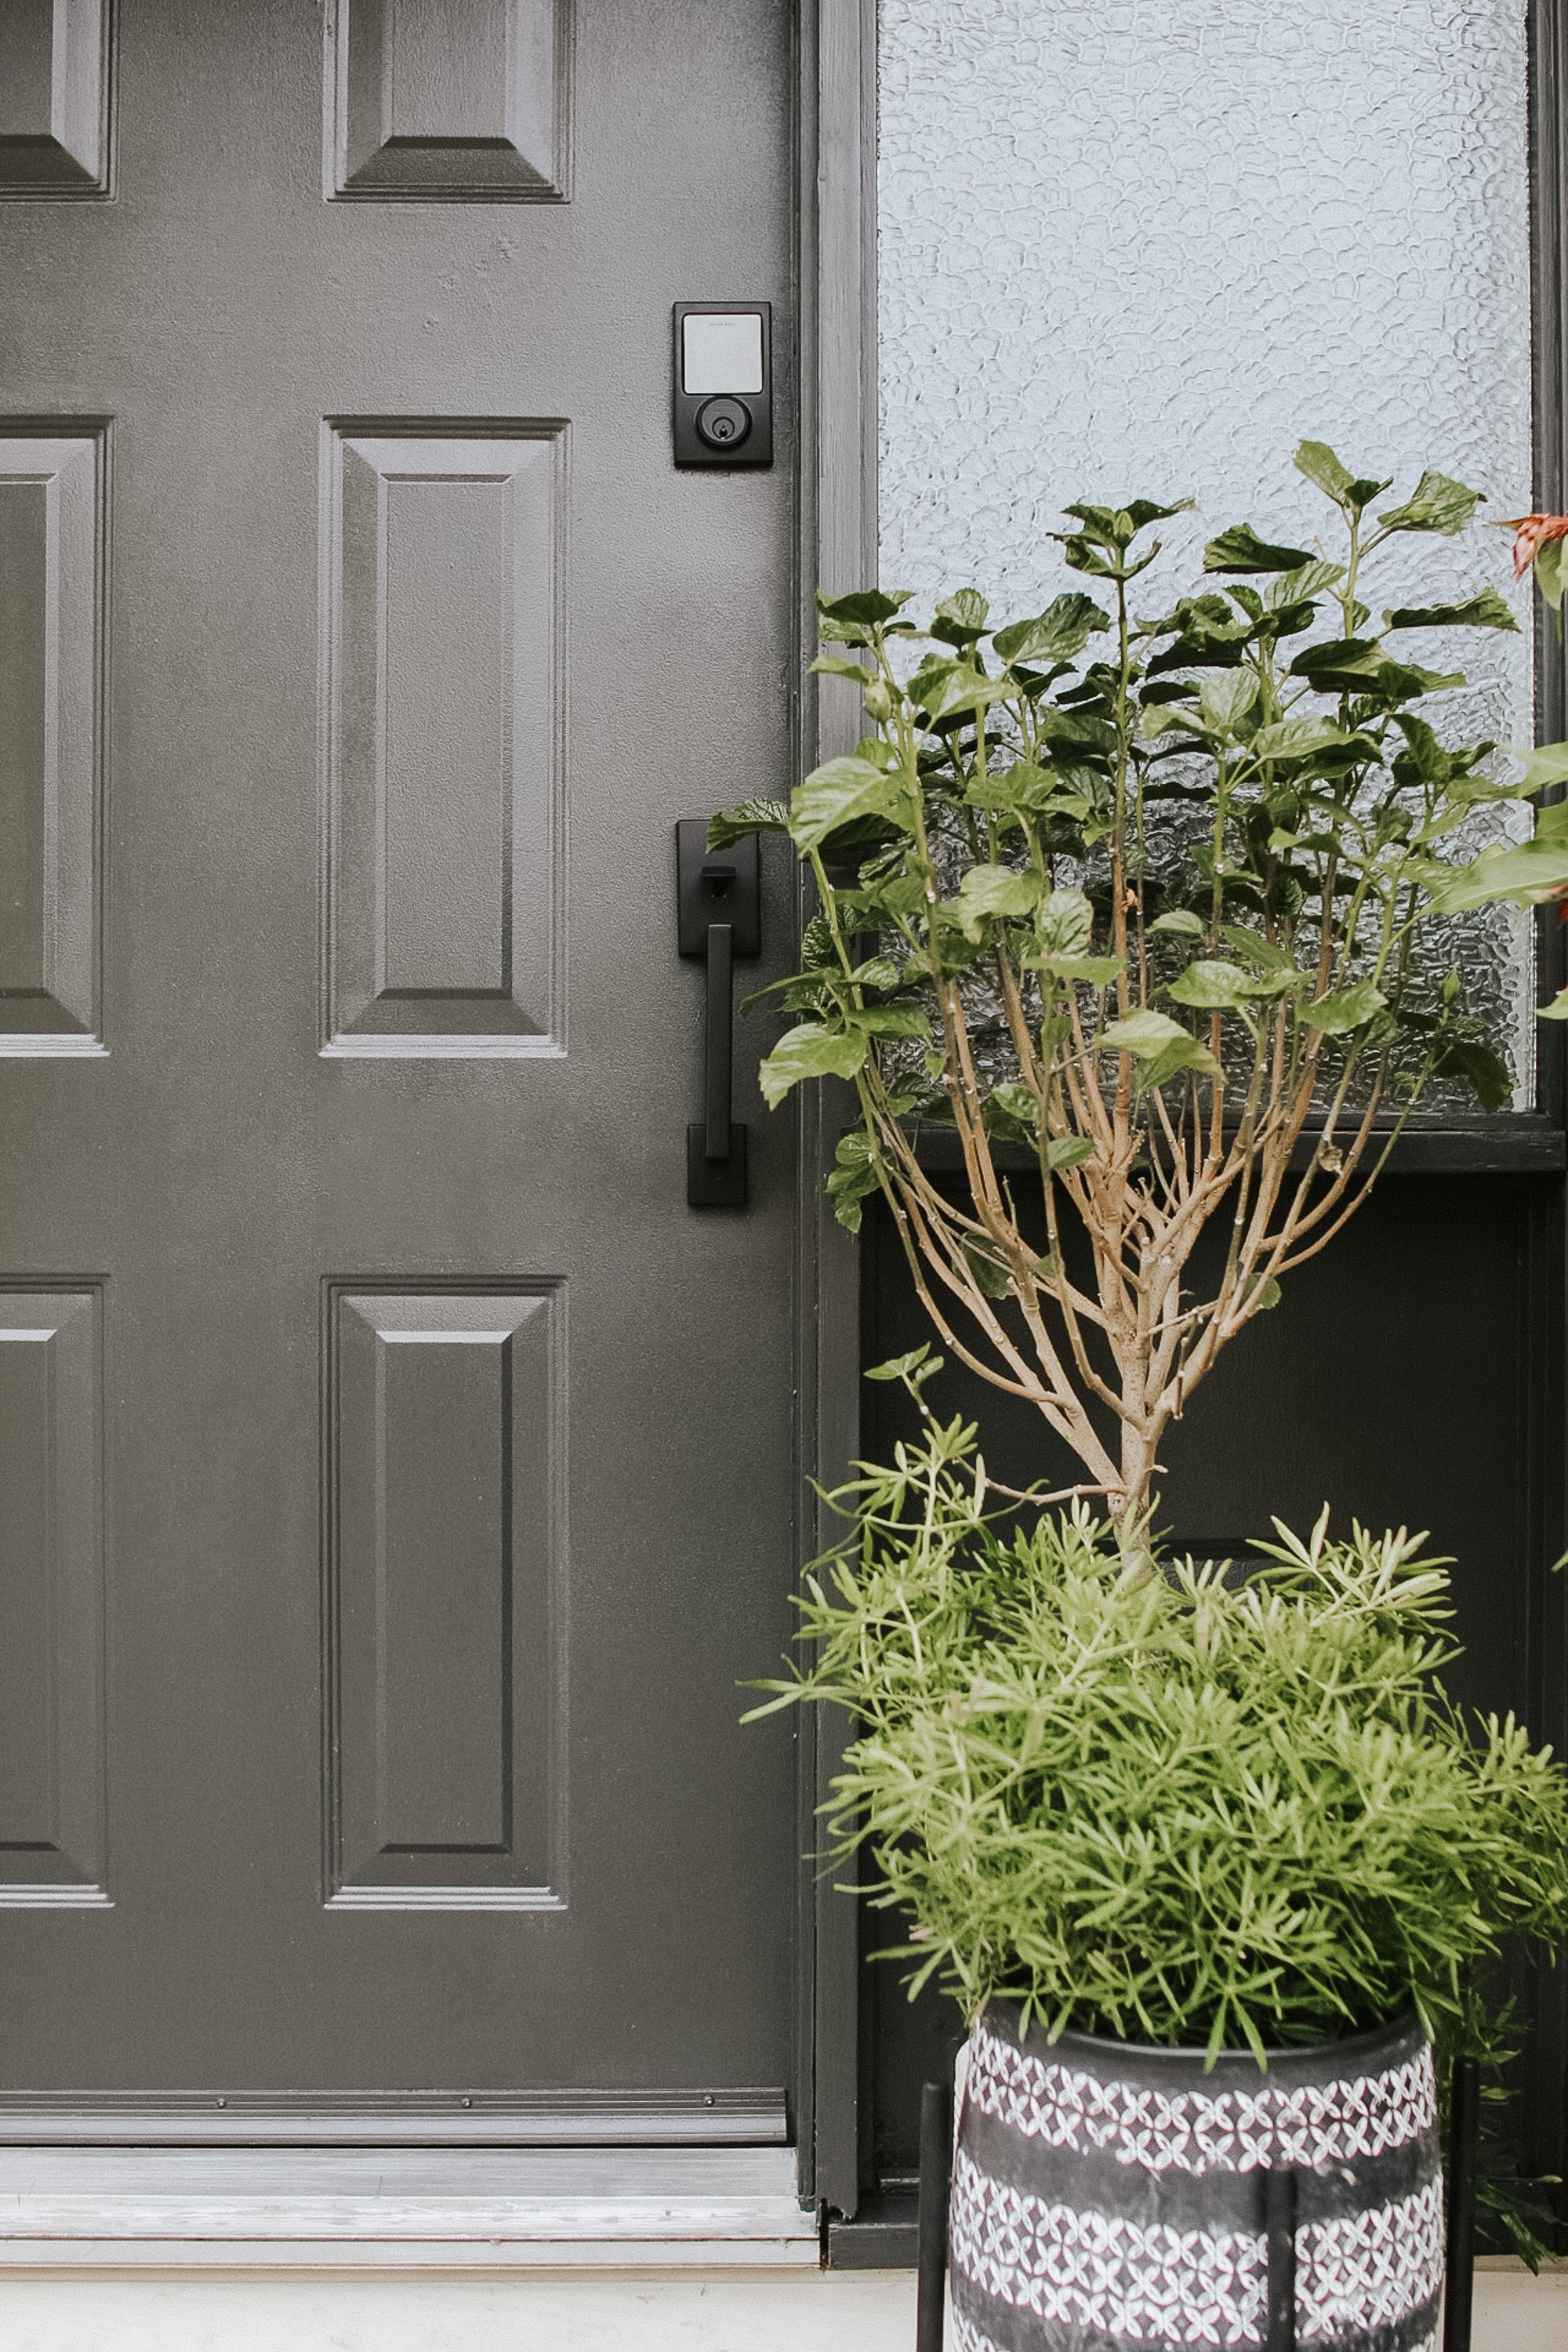 Our Front Door Makeover and our new Schlage Sense Modern Black Door Handle.